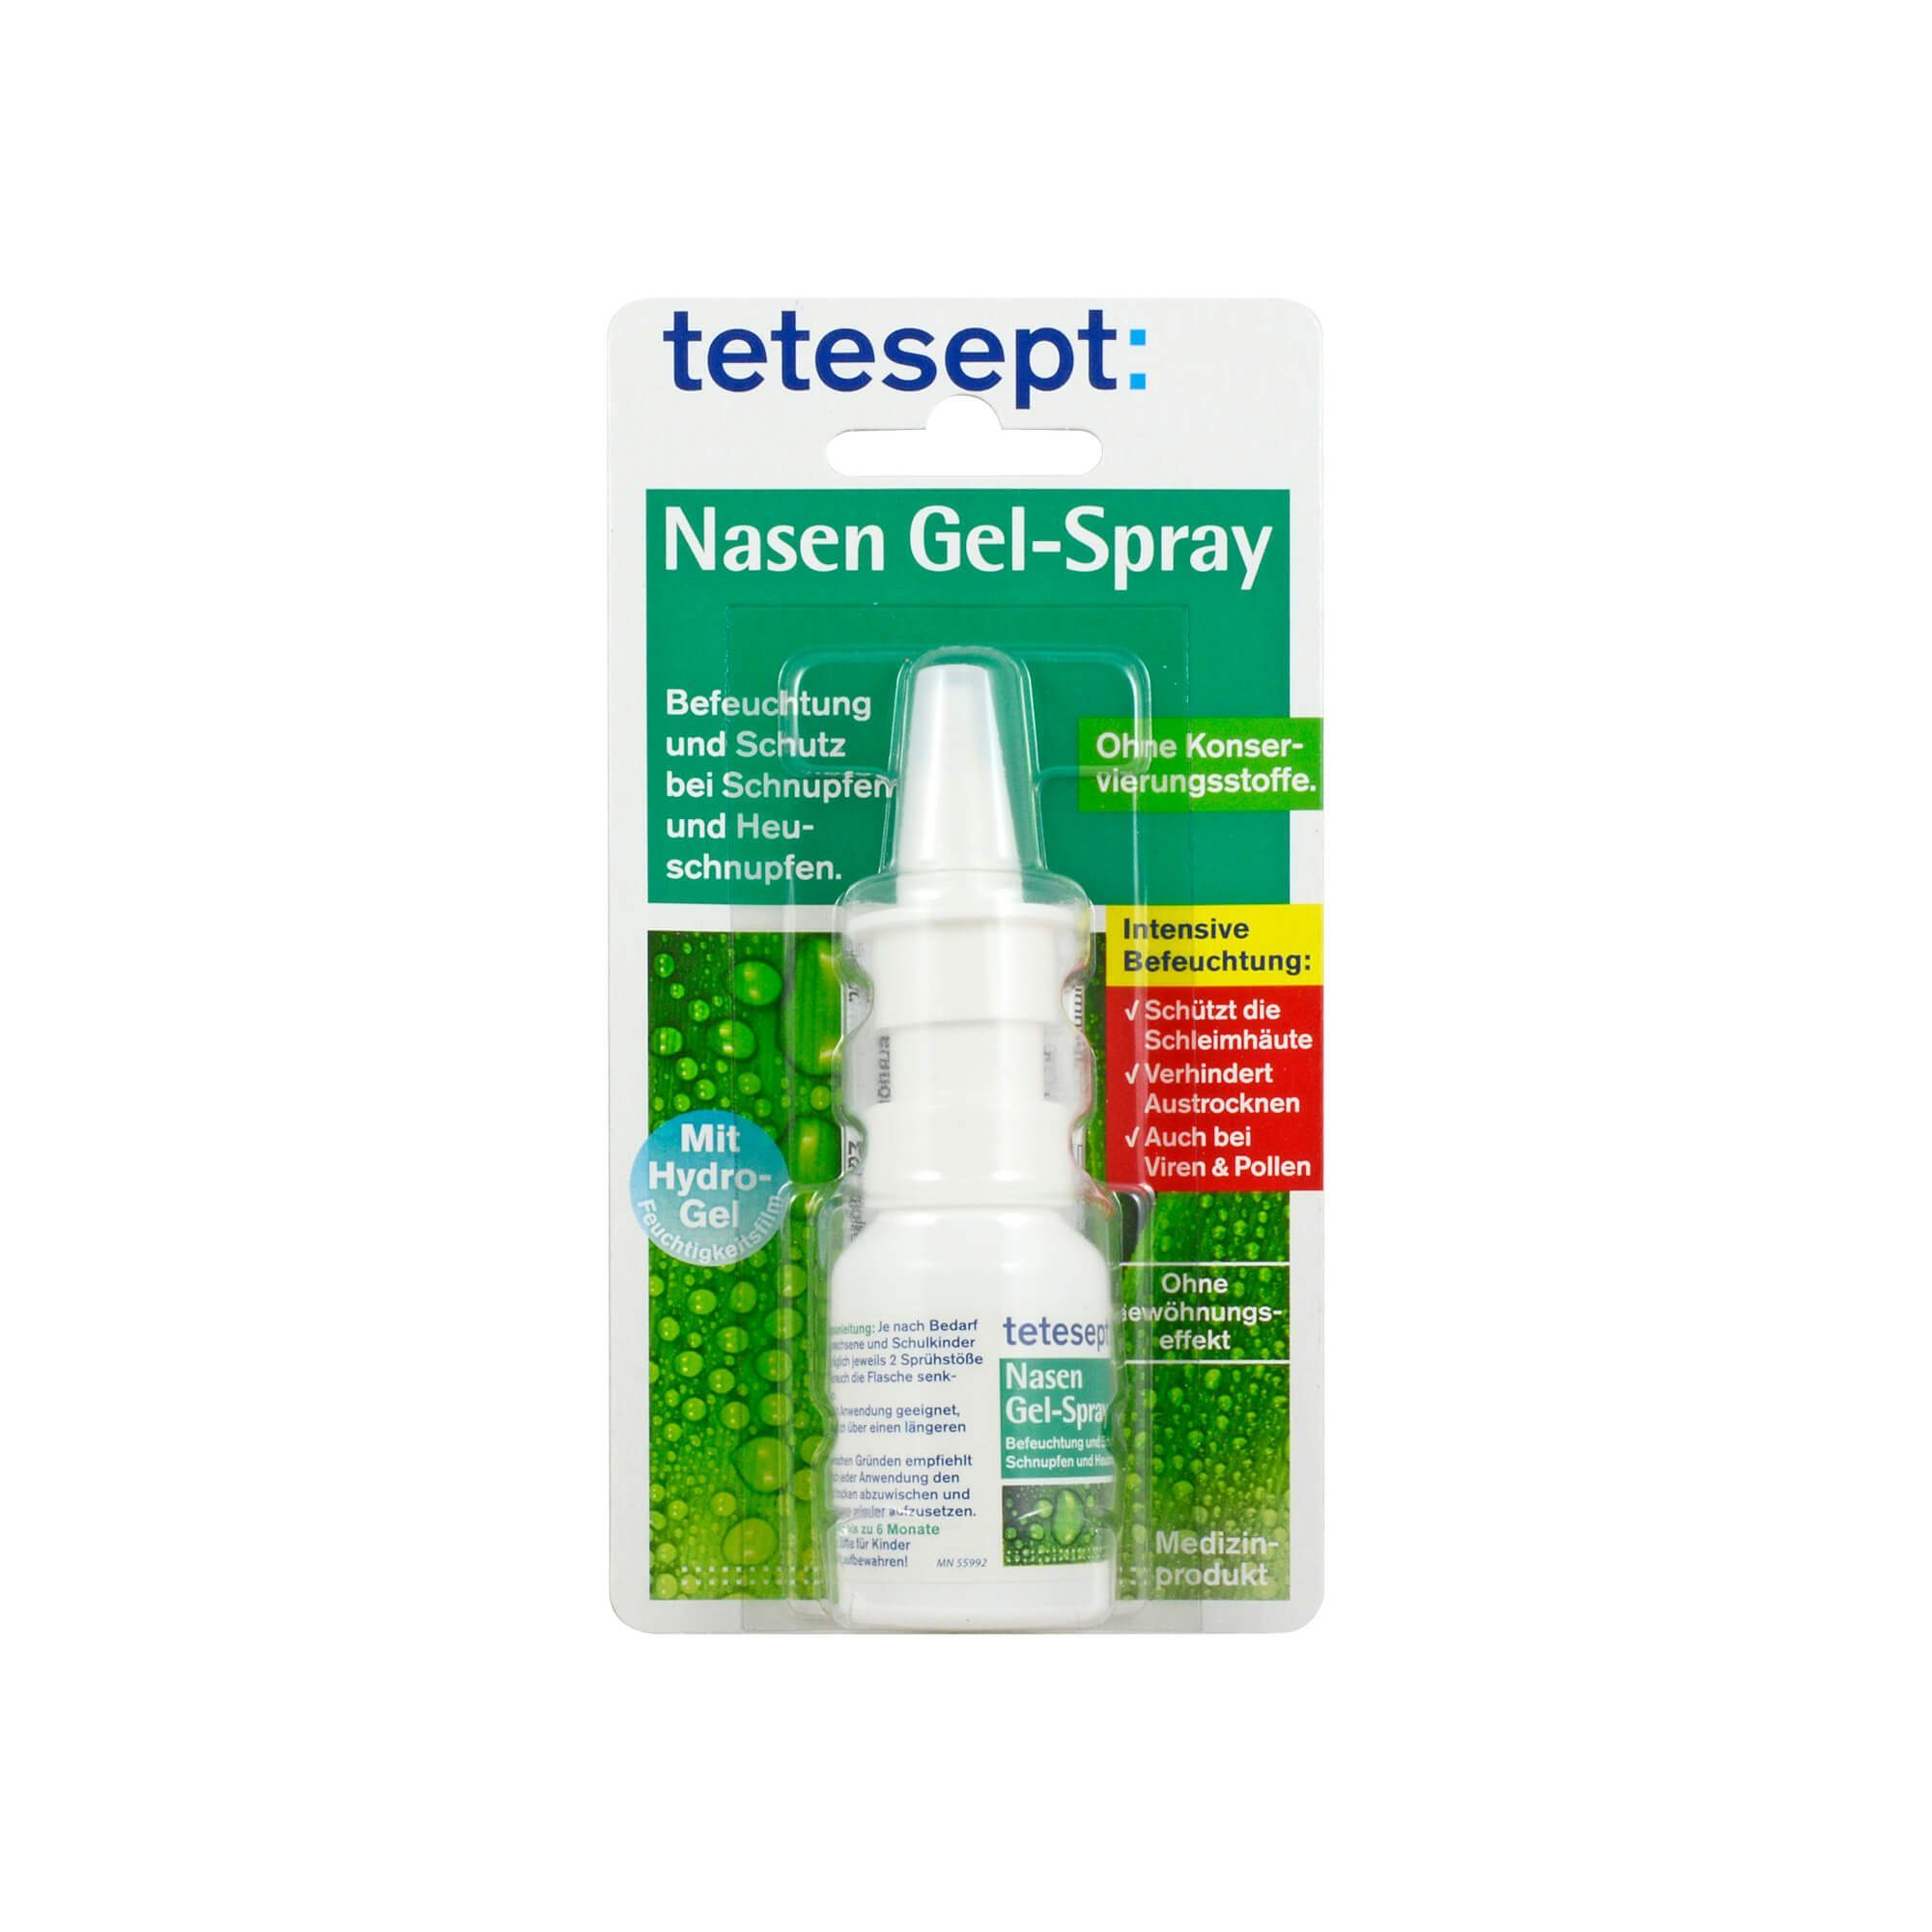 Tetesept Nasen Gel-Spray, 20 ml